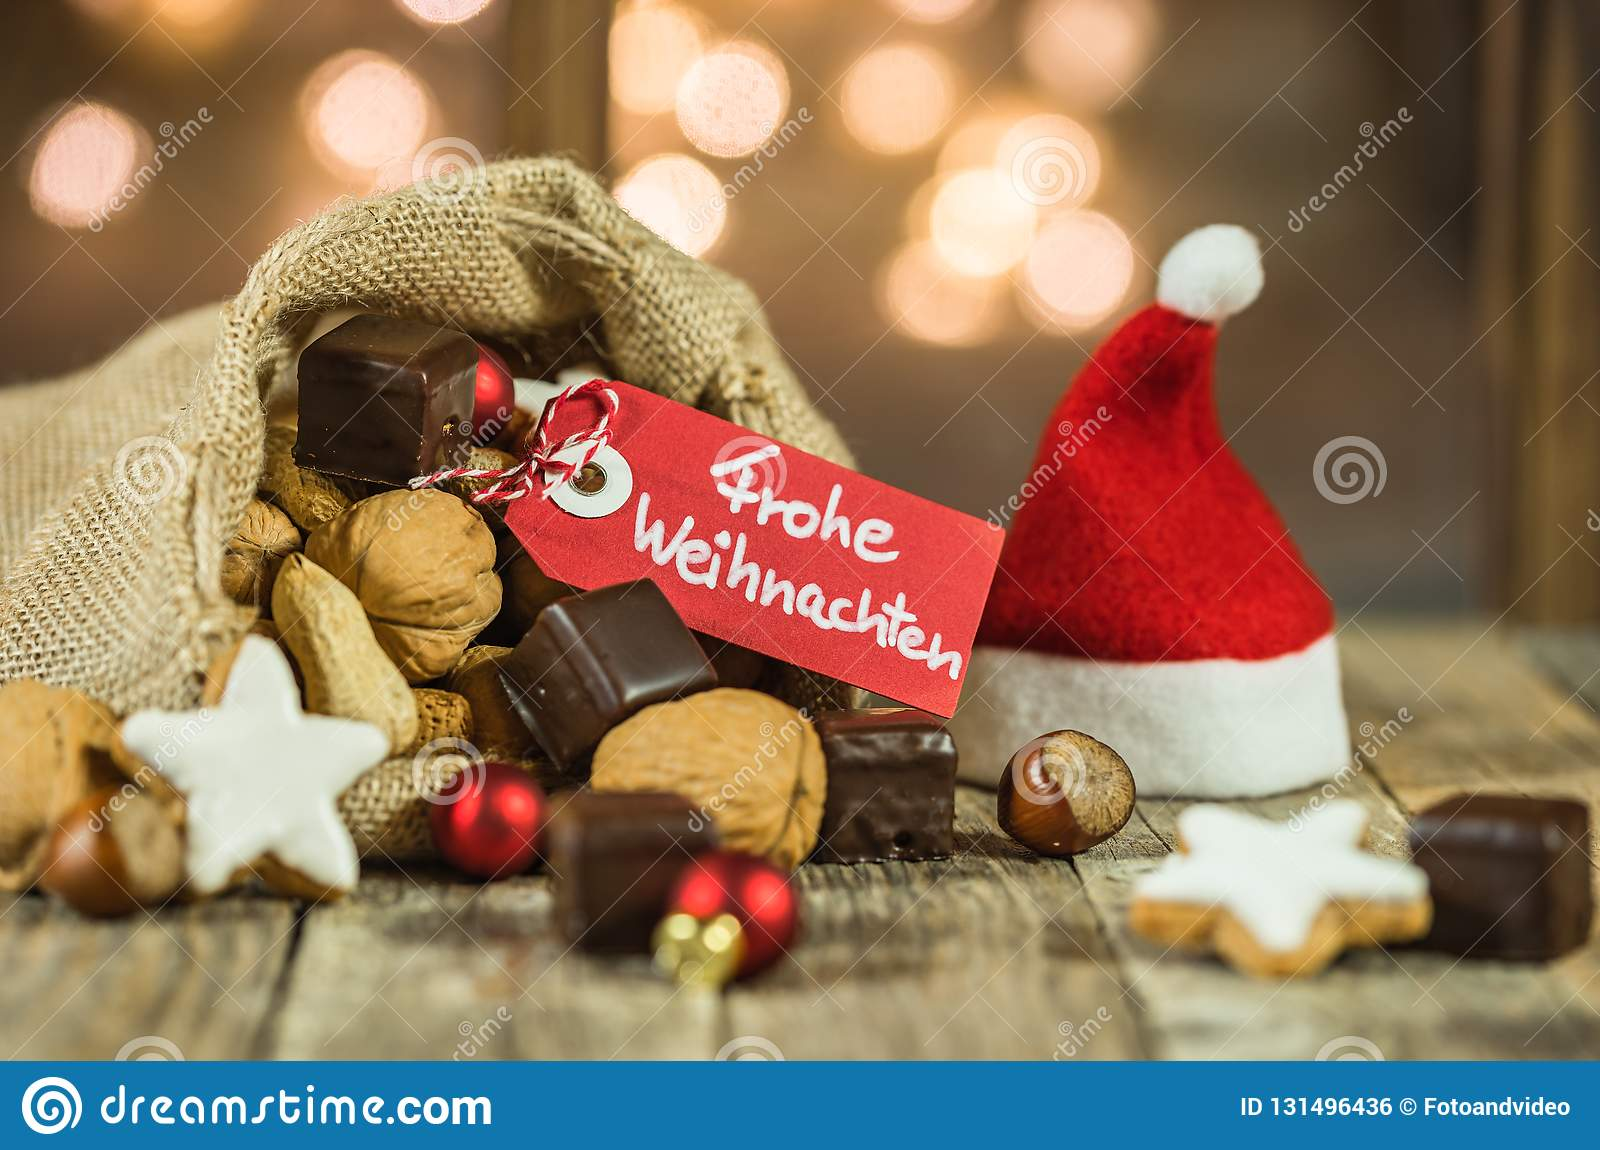 Advent Weihnachten Christmas Or Advent Food And Sweets In Santa Claus Sack Stock